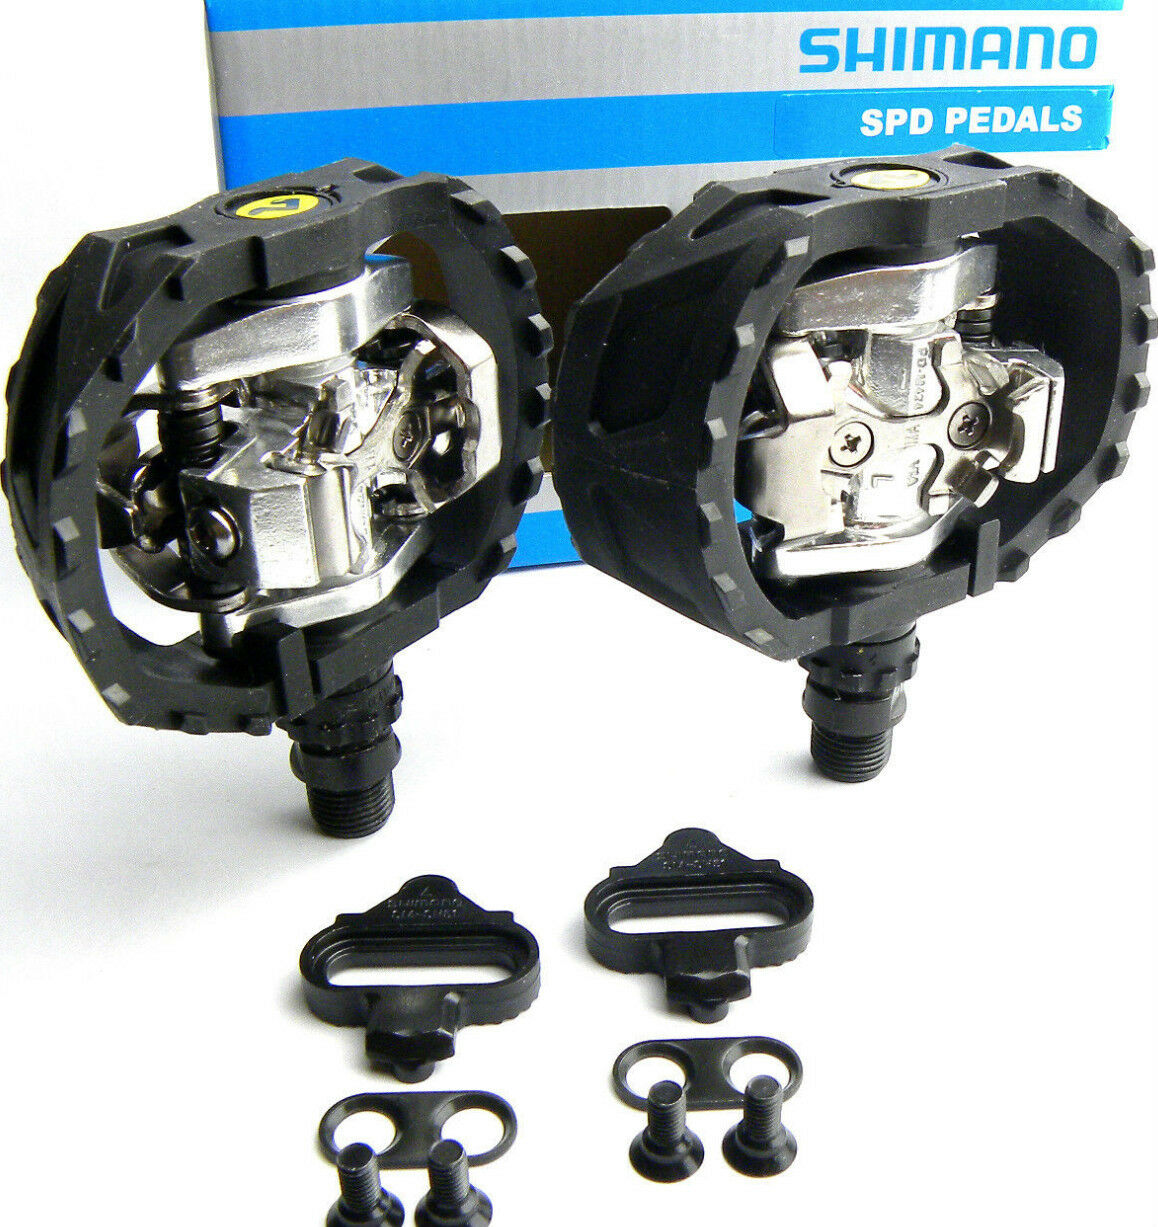 1  paar SHIMANO PD-M424 SPD PEDAL PEDALE BMX DH MTB FREERIDE inkl. CLEATS OVP  selling well all over the world